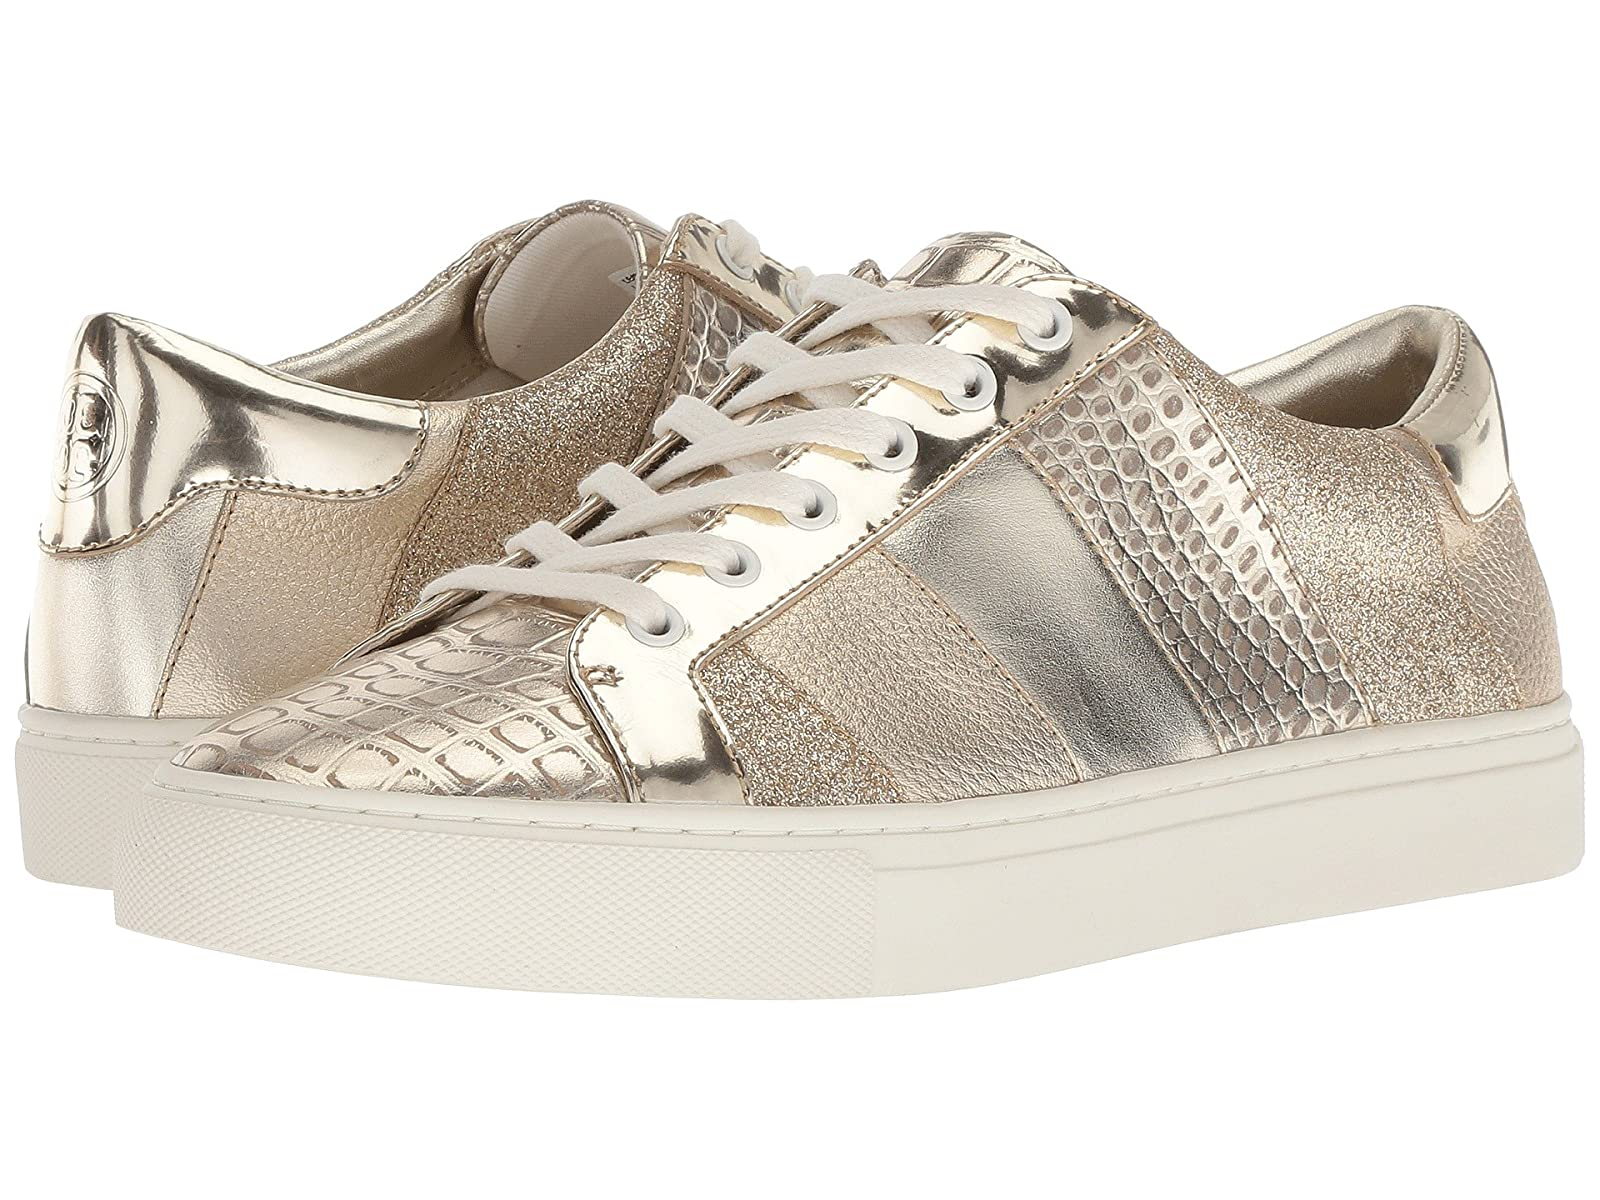 Tory Burch Ames SneakerAtmospheric grades have affordable shoes